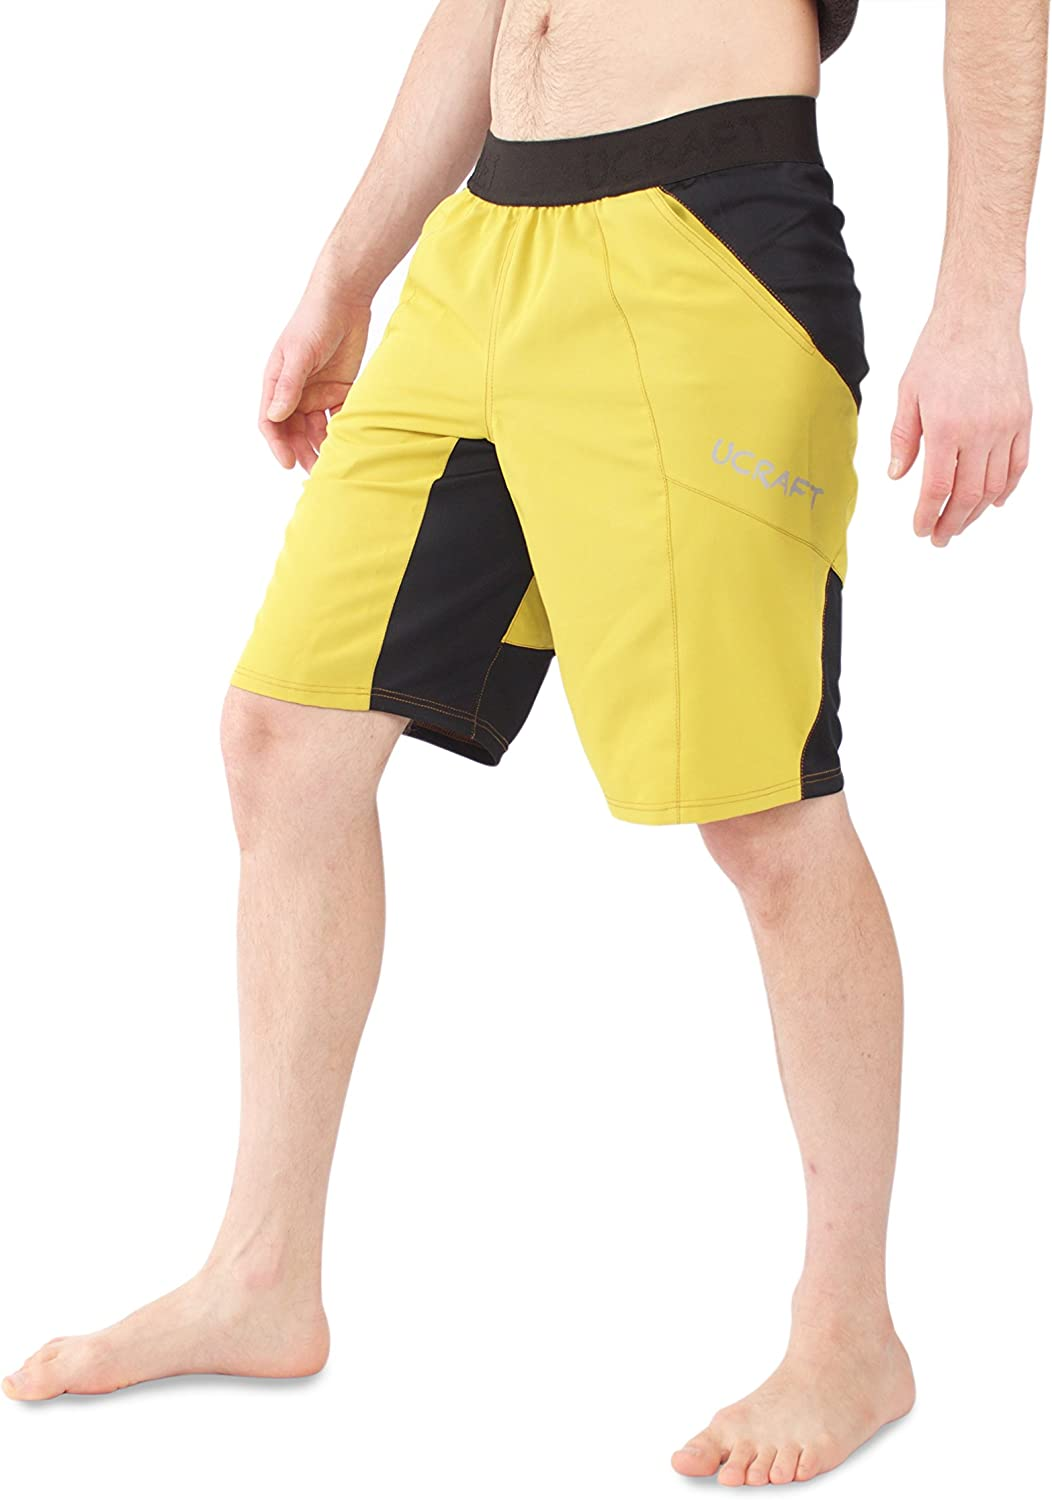 Lightweight and Breathable Multisport Shorts. Ucraft Climbing Anti-Gravity Shorts Stretchy